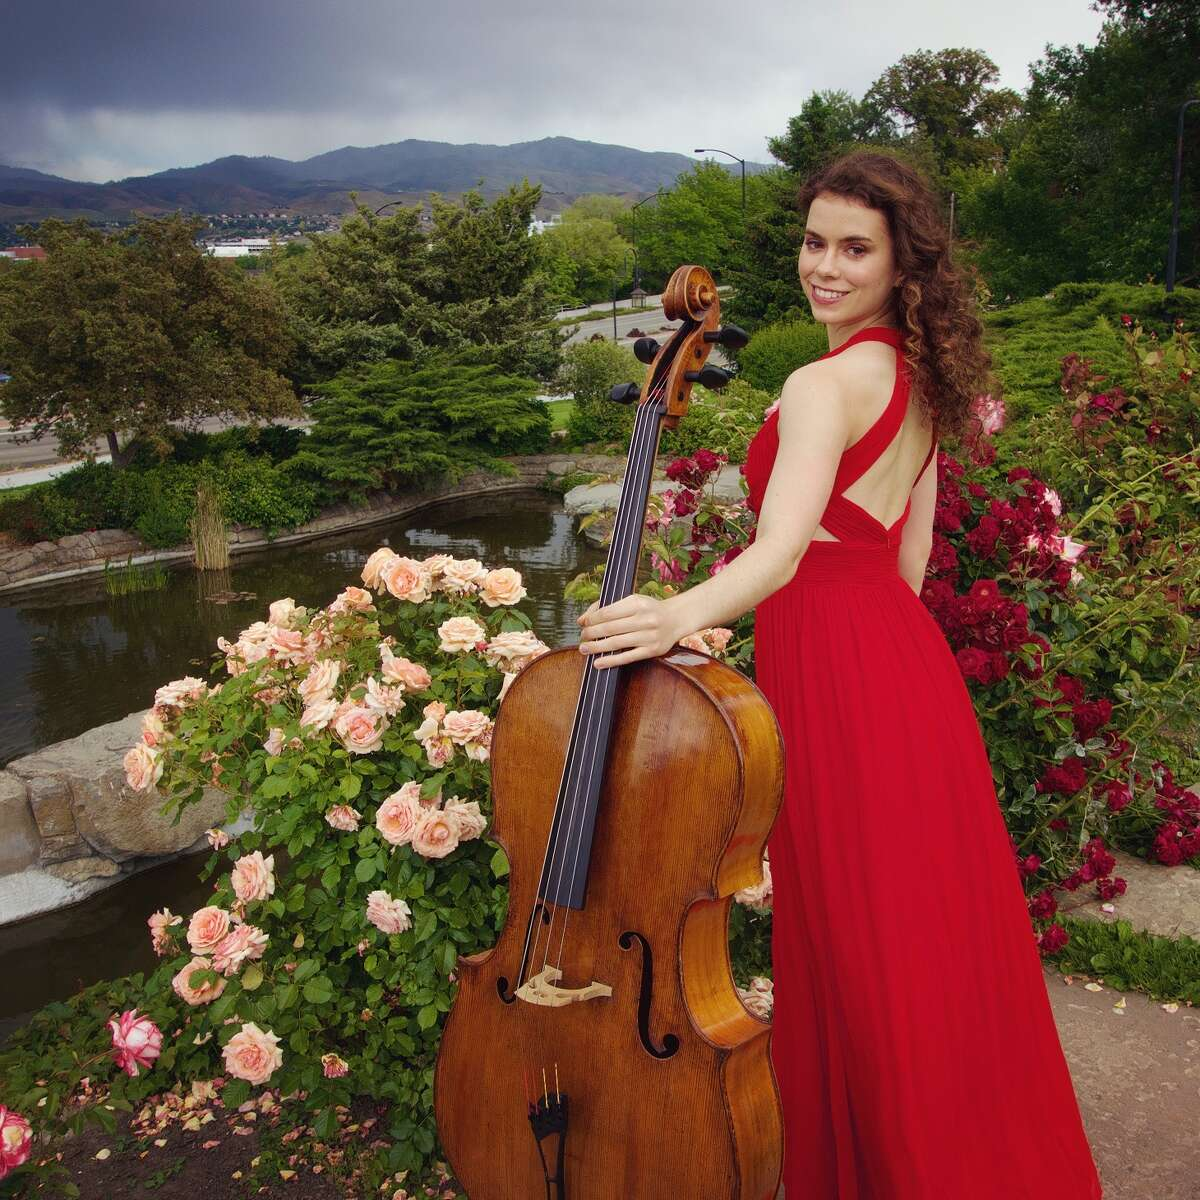 Cello soloist and winner of the Young Texas Artist Competition Katherine Audas will perform Tchaikovsky's Variations on a Rococo Theme at the April 30 Woodlands Symphony Ochestra concert.